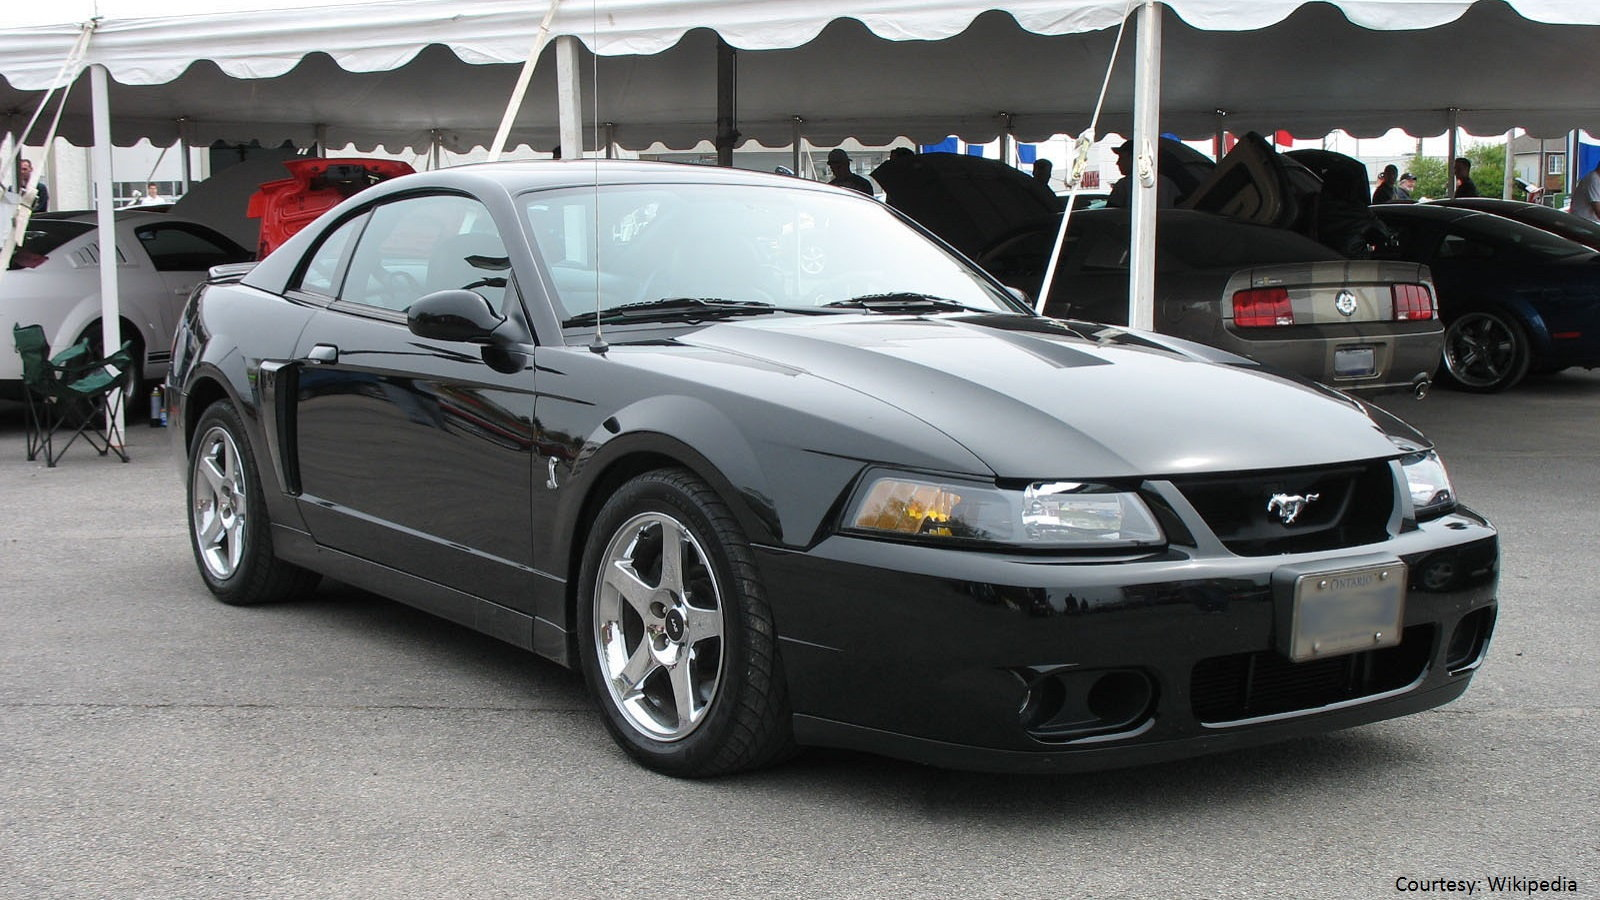 7 Fastest Mustangs Ever Produced | Themustangsource